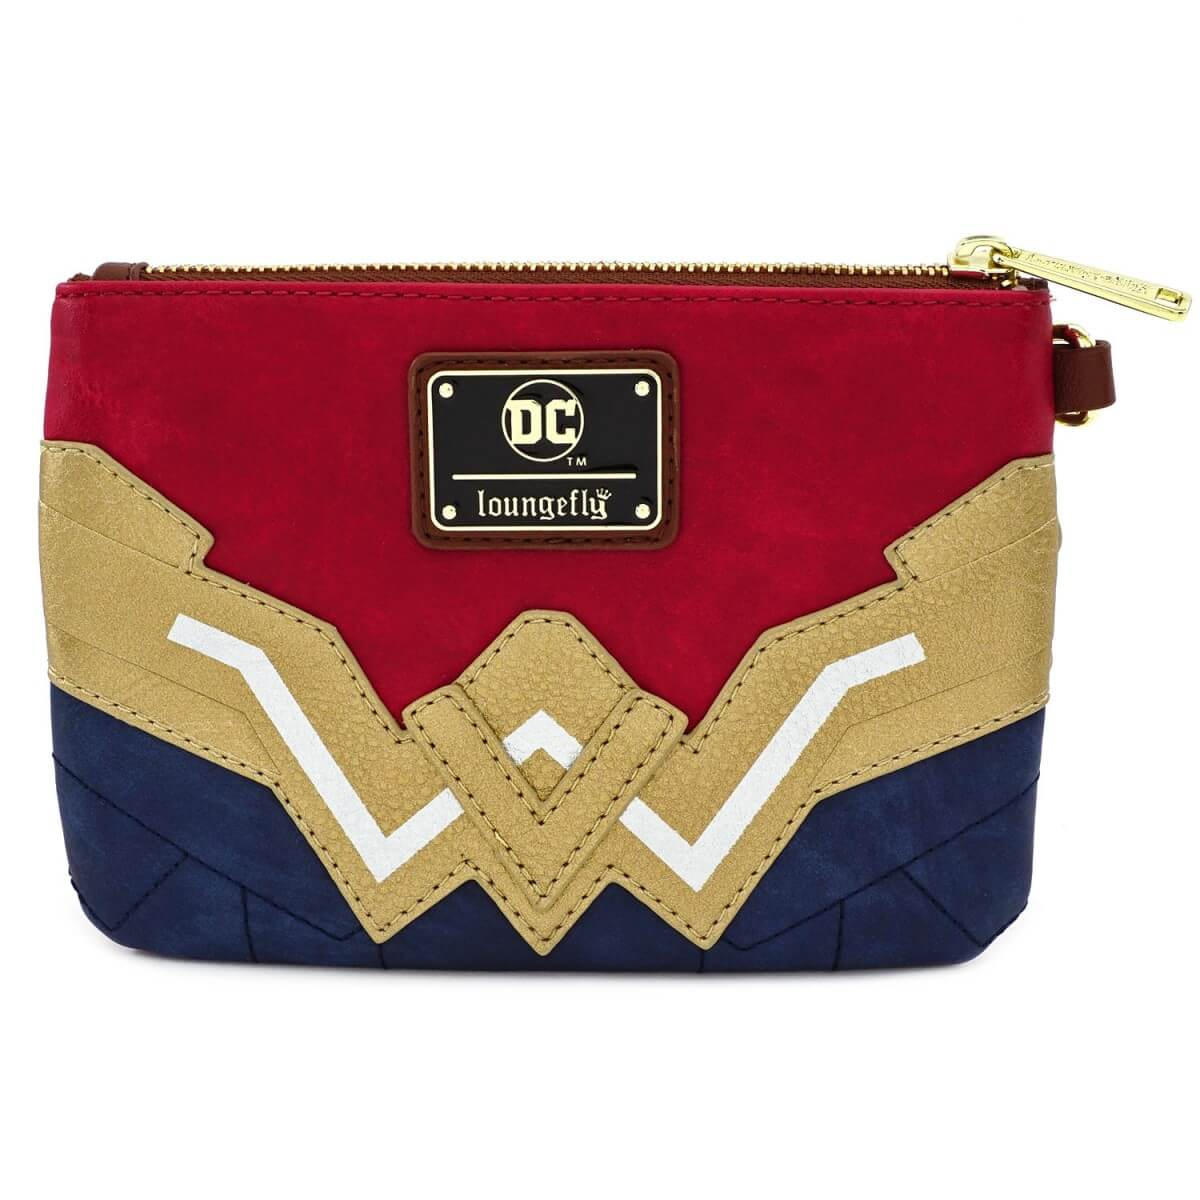 Image of Loungefly DC Comics Wonder Woman Faux Leather Wristlet